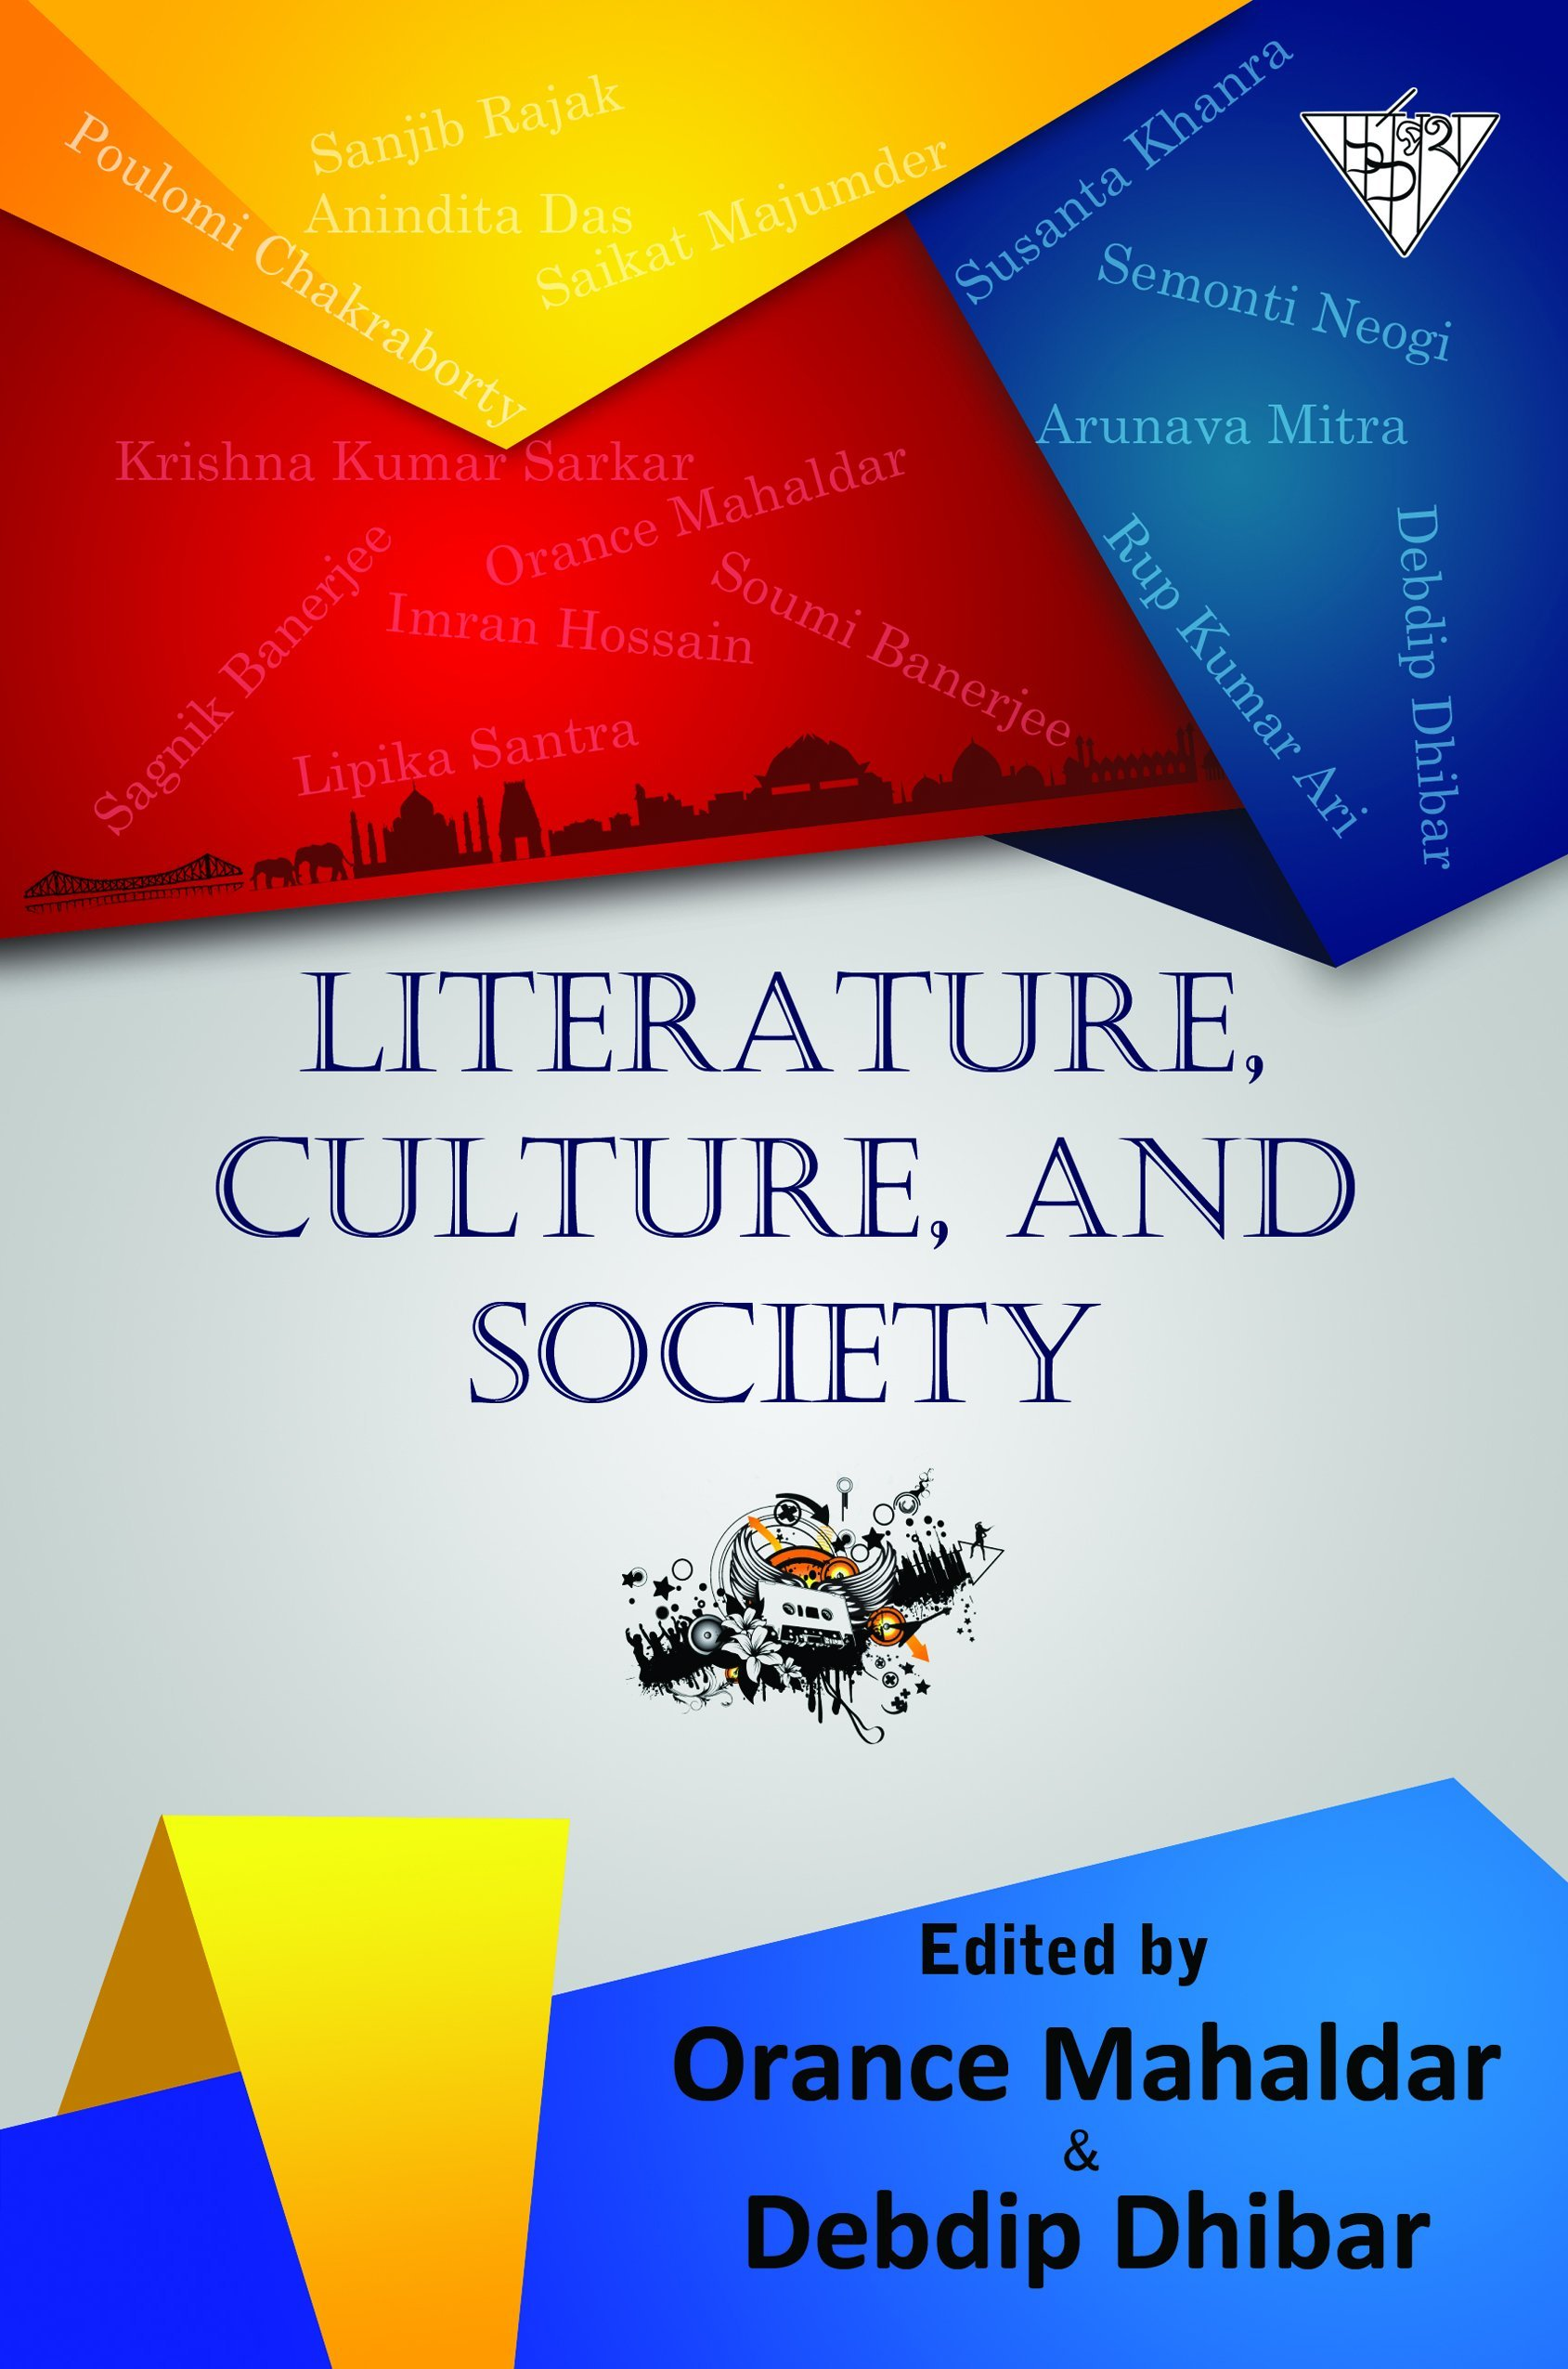 LITERATURE CULTURE AND SOCIETY PDF DOWNLOAD